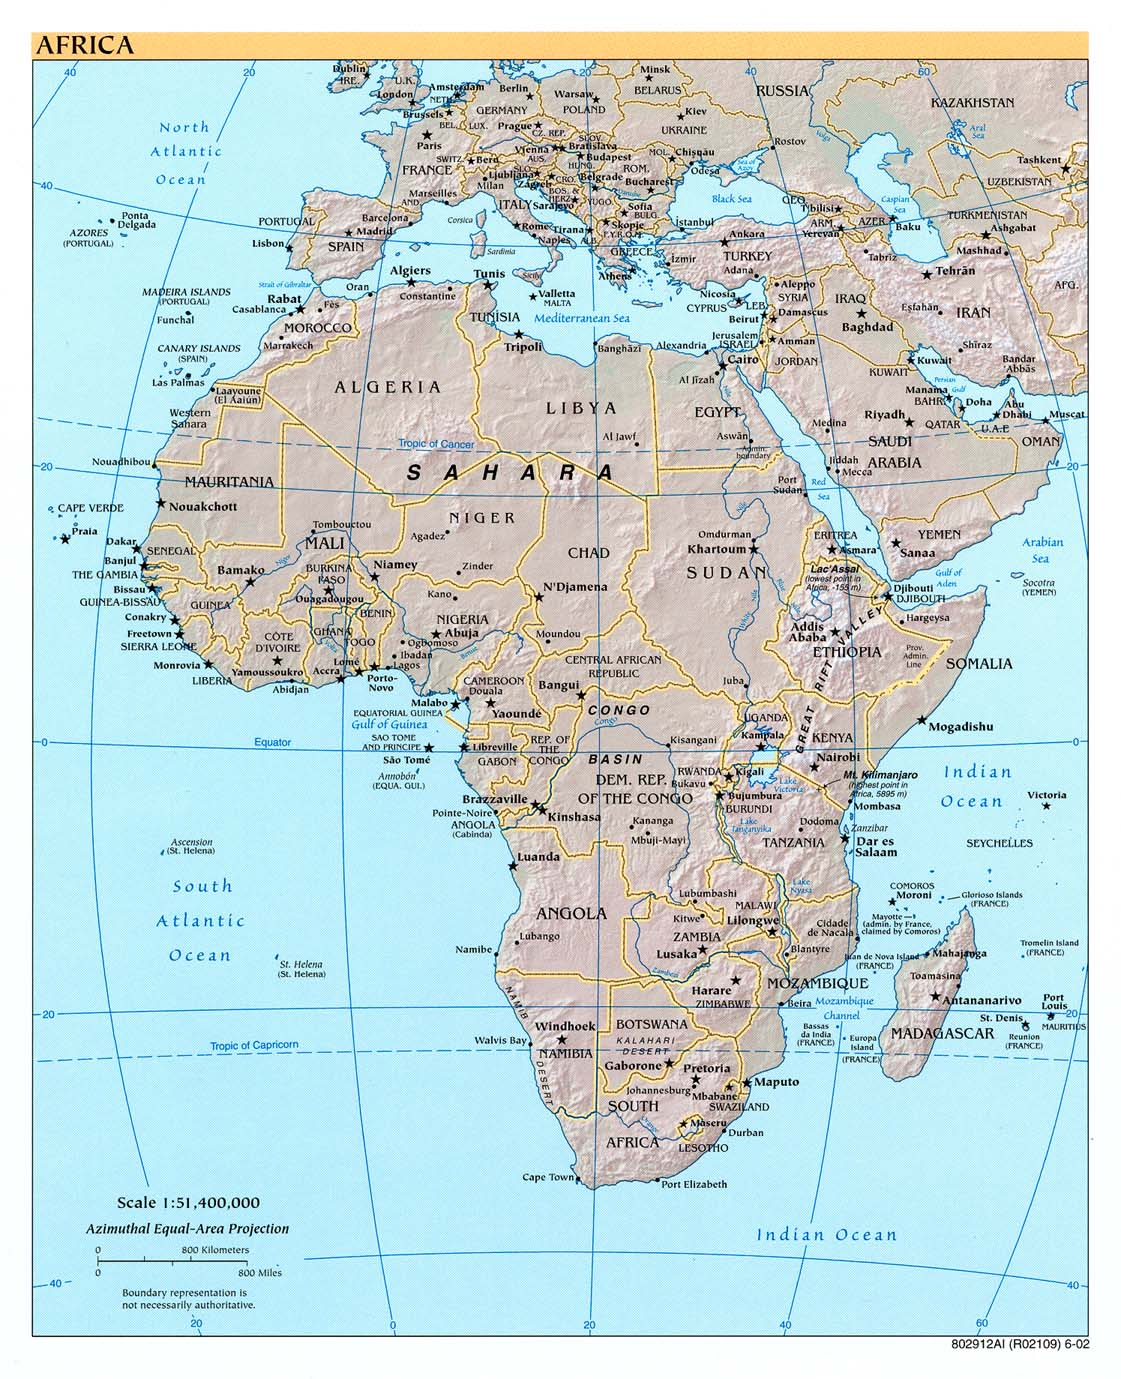 Africa physical map 2002